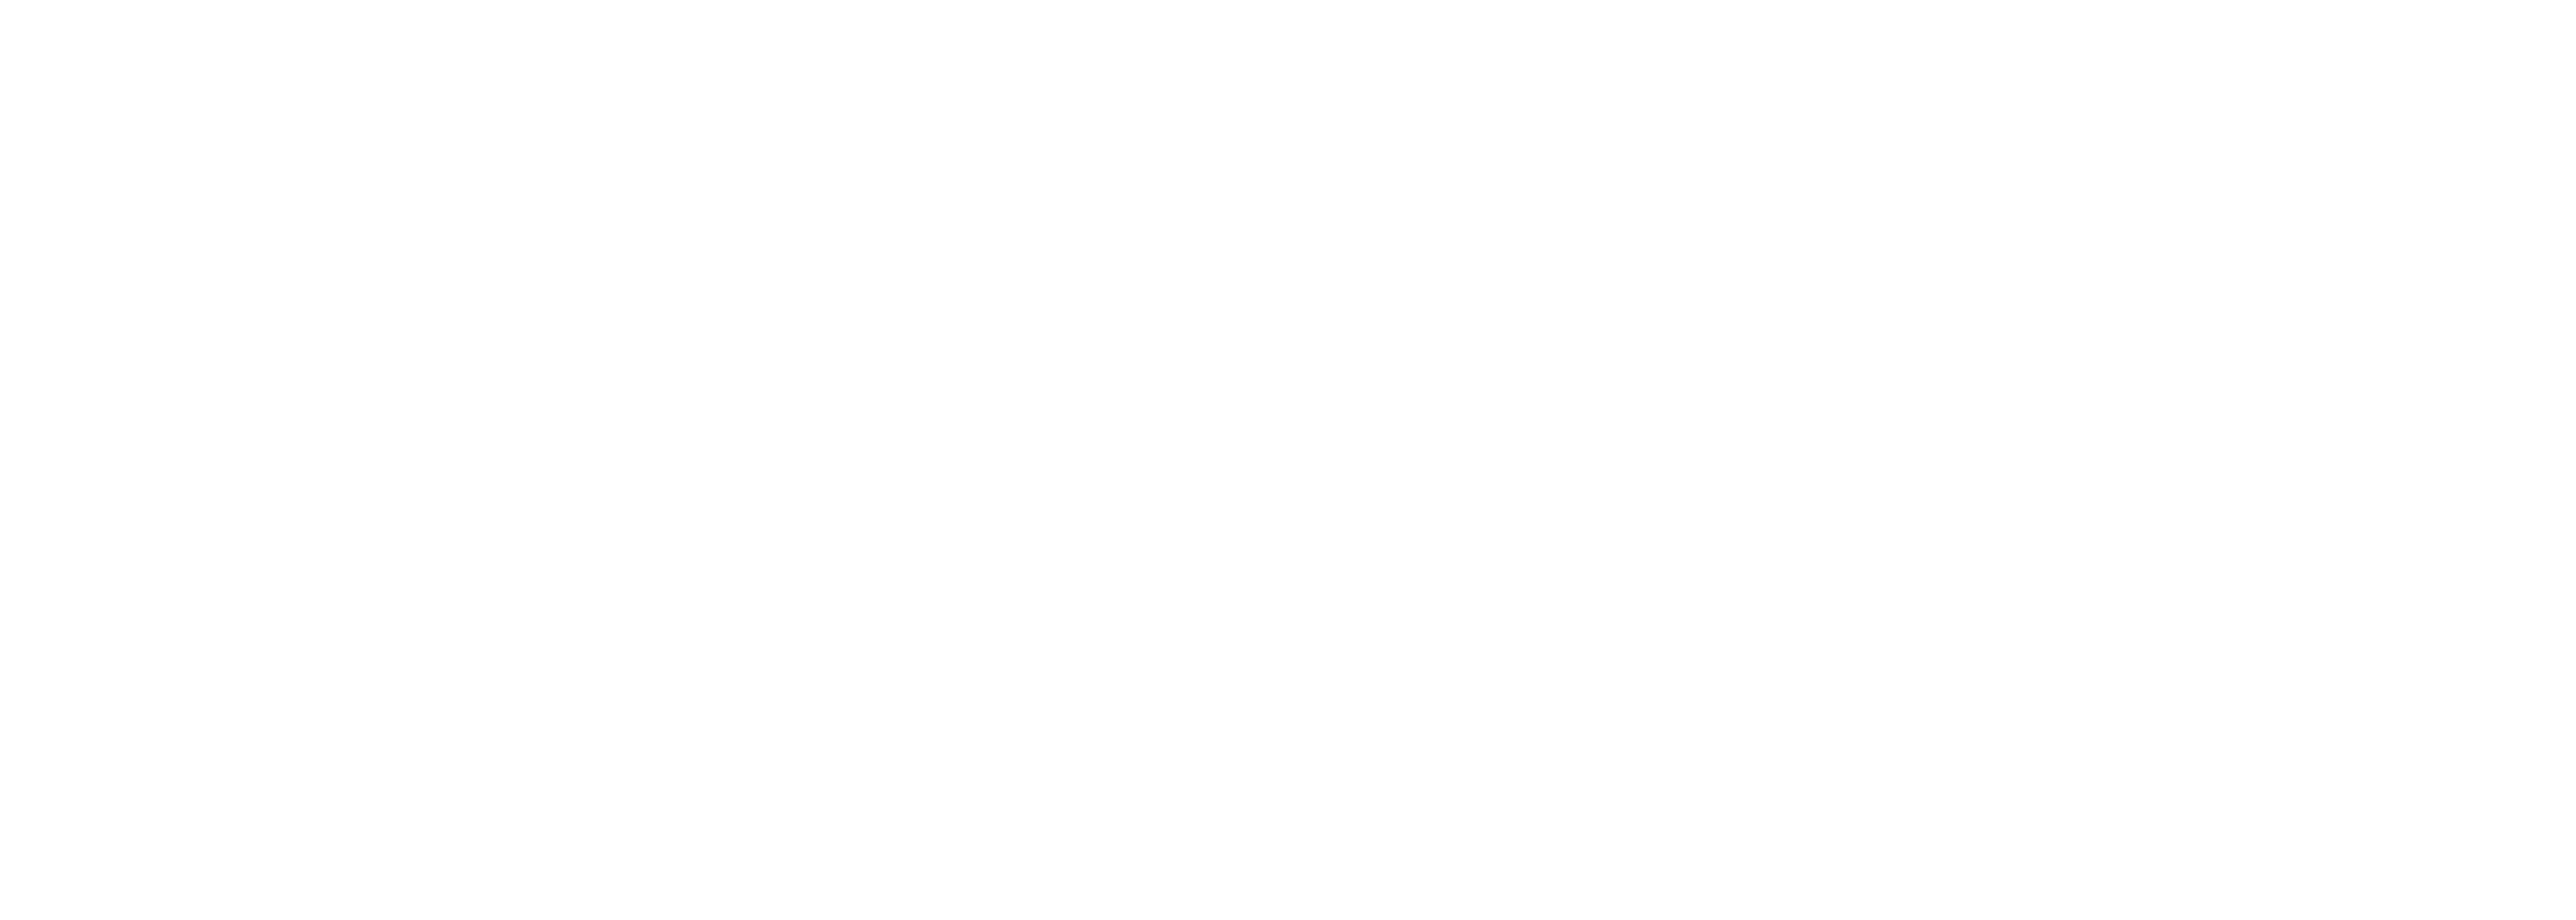 marquis-07-18-20-slider2.png